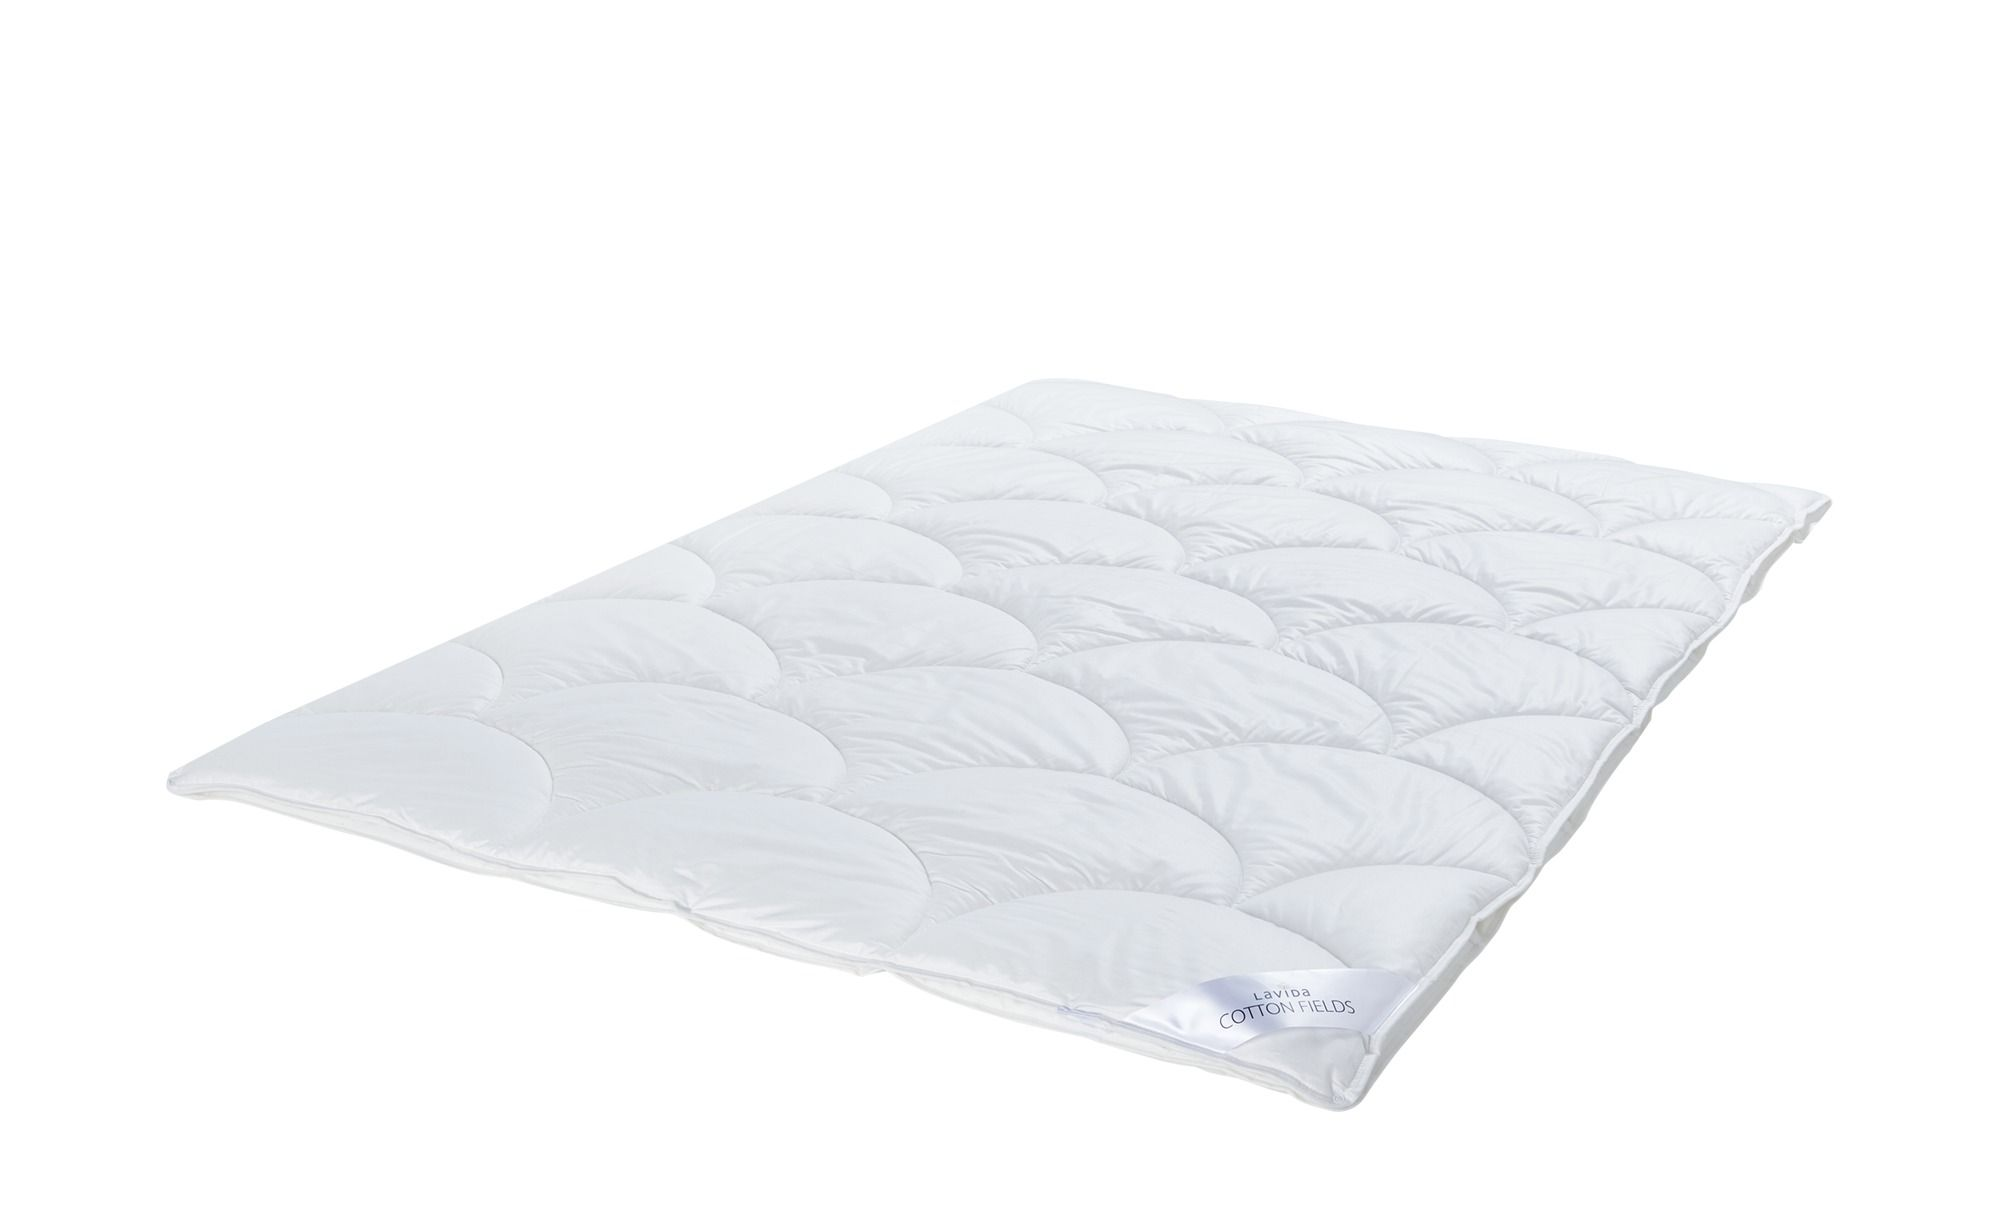 Billerbeck Baumwoll-decke Wash Cotton Uno Bettdecken Billerbeck